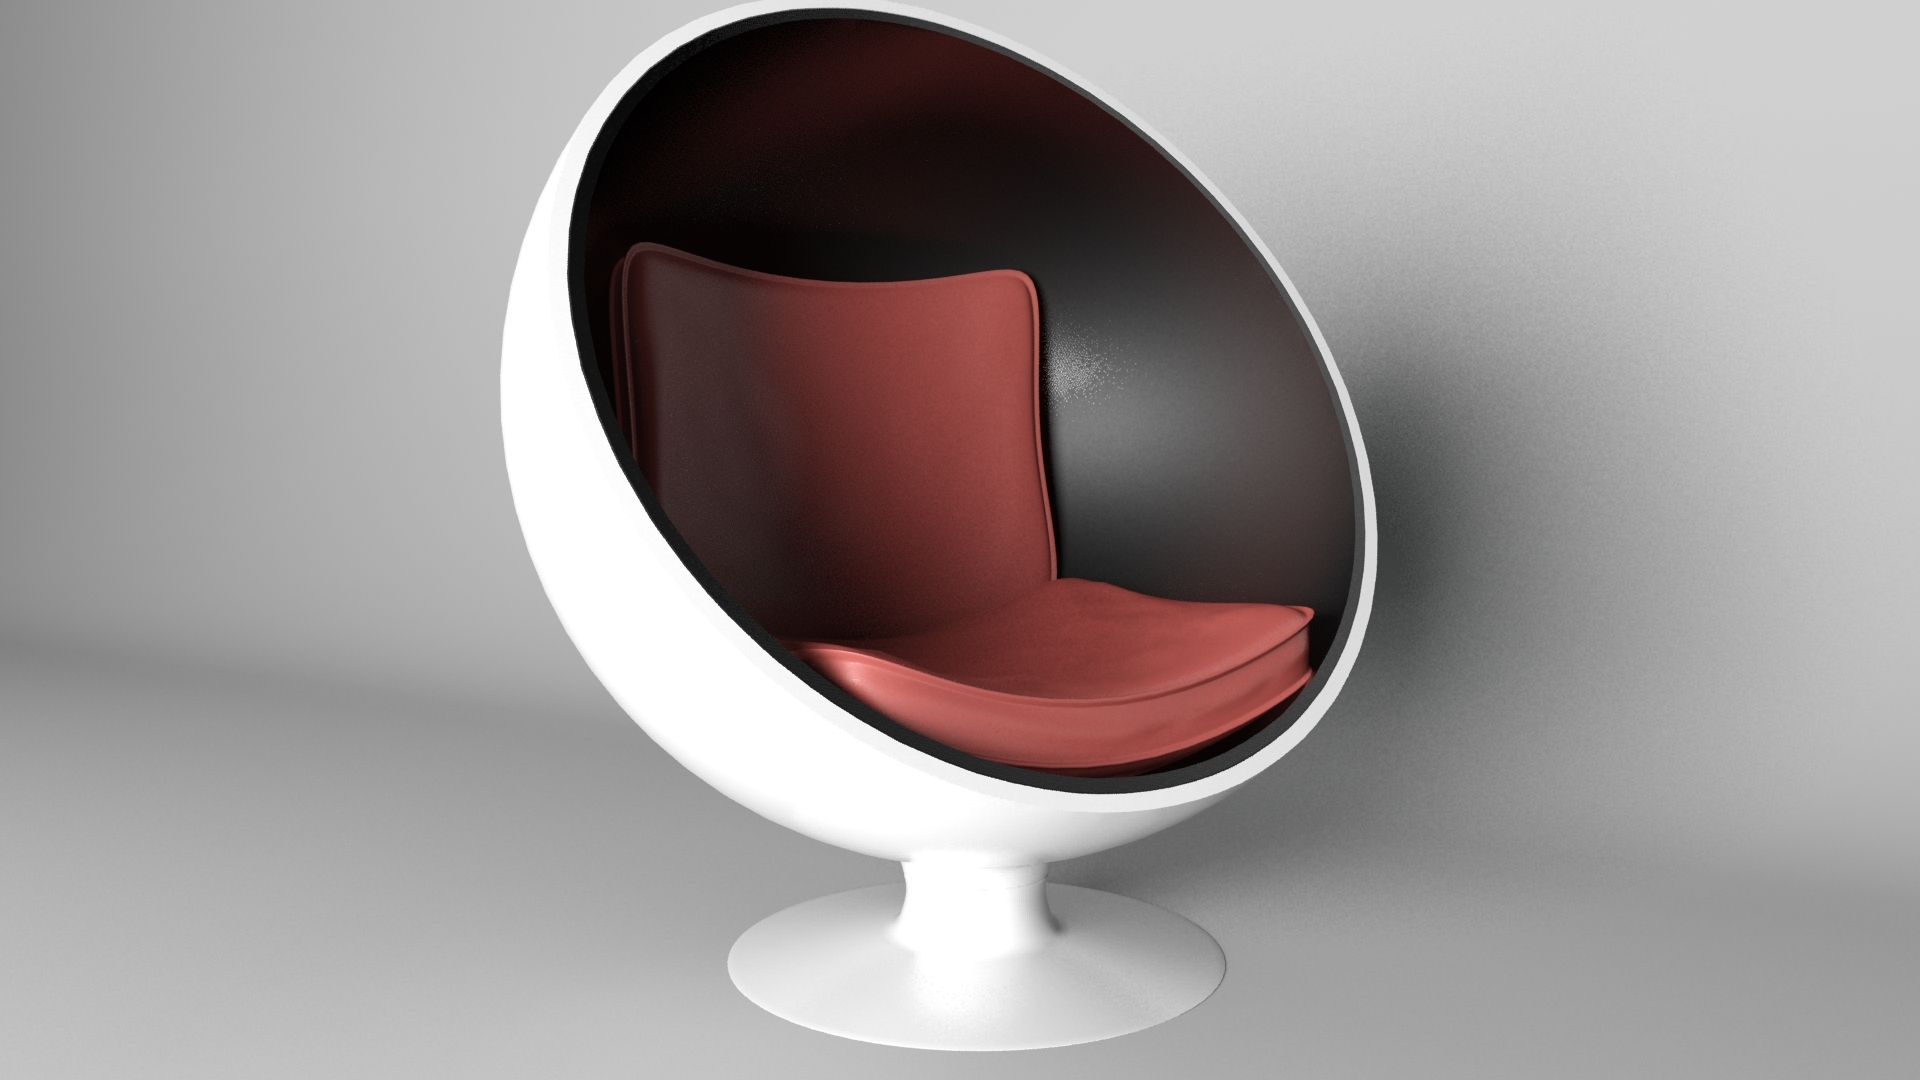 Sphere Chair With Modern Seat Rander In Mantal Ray by